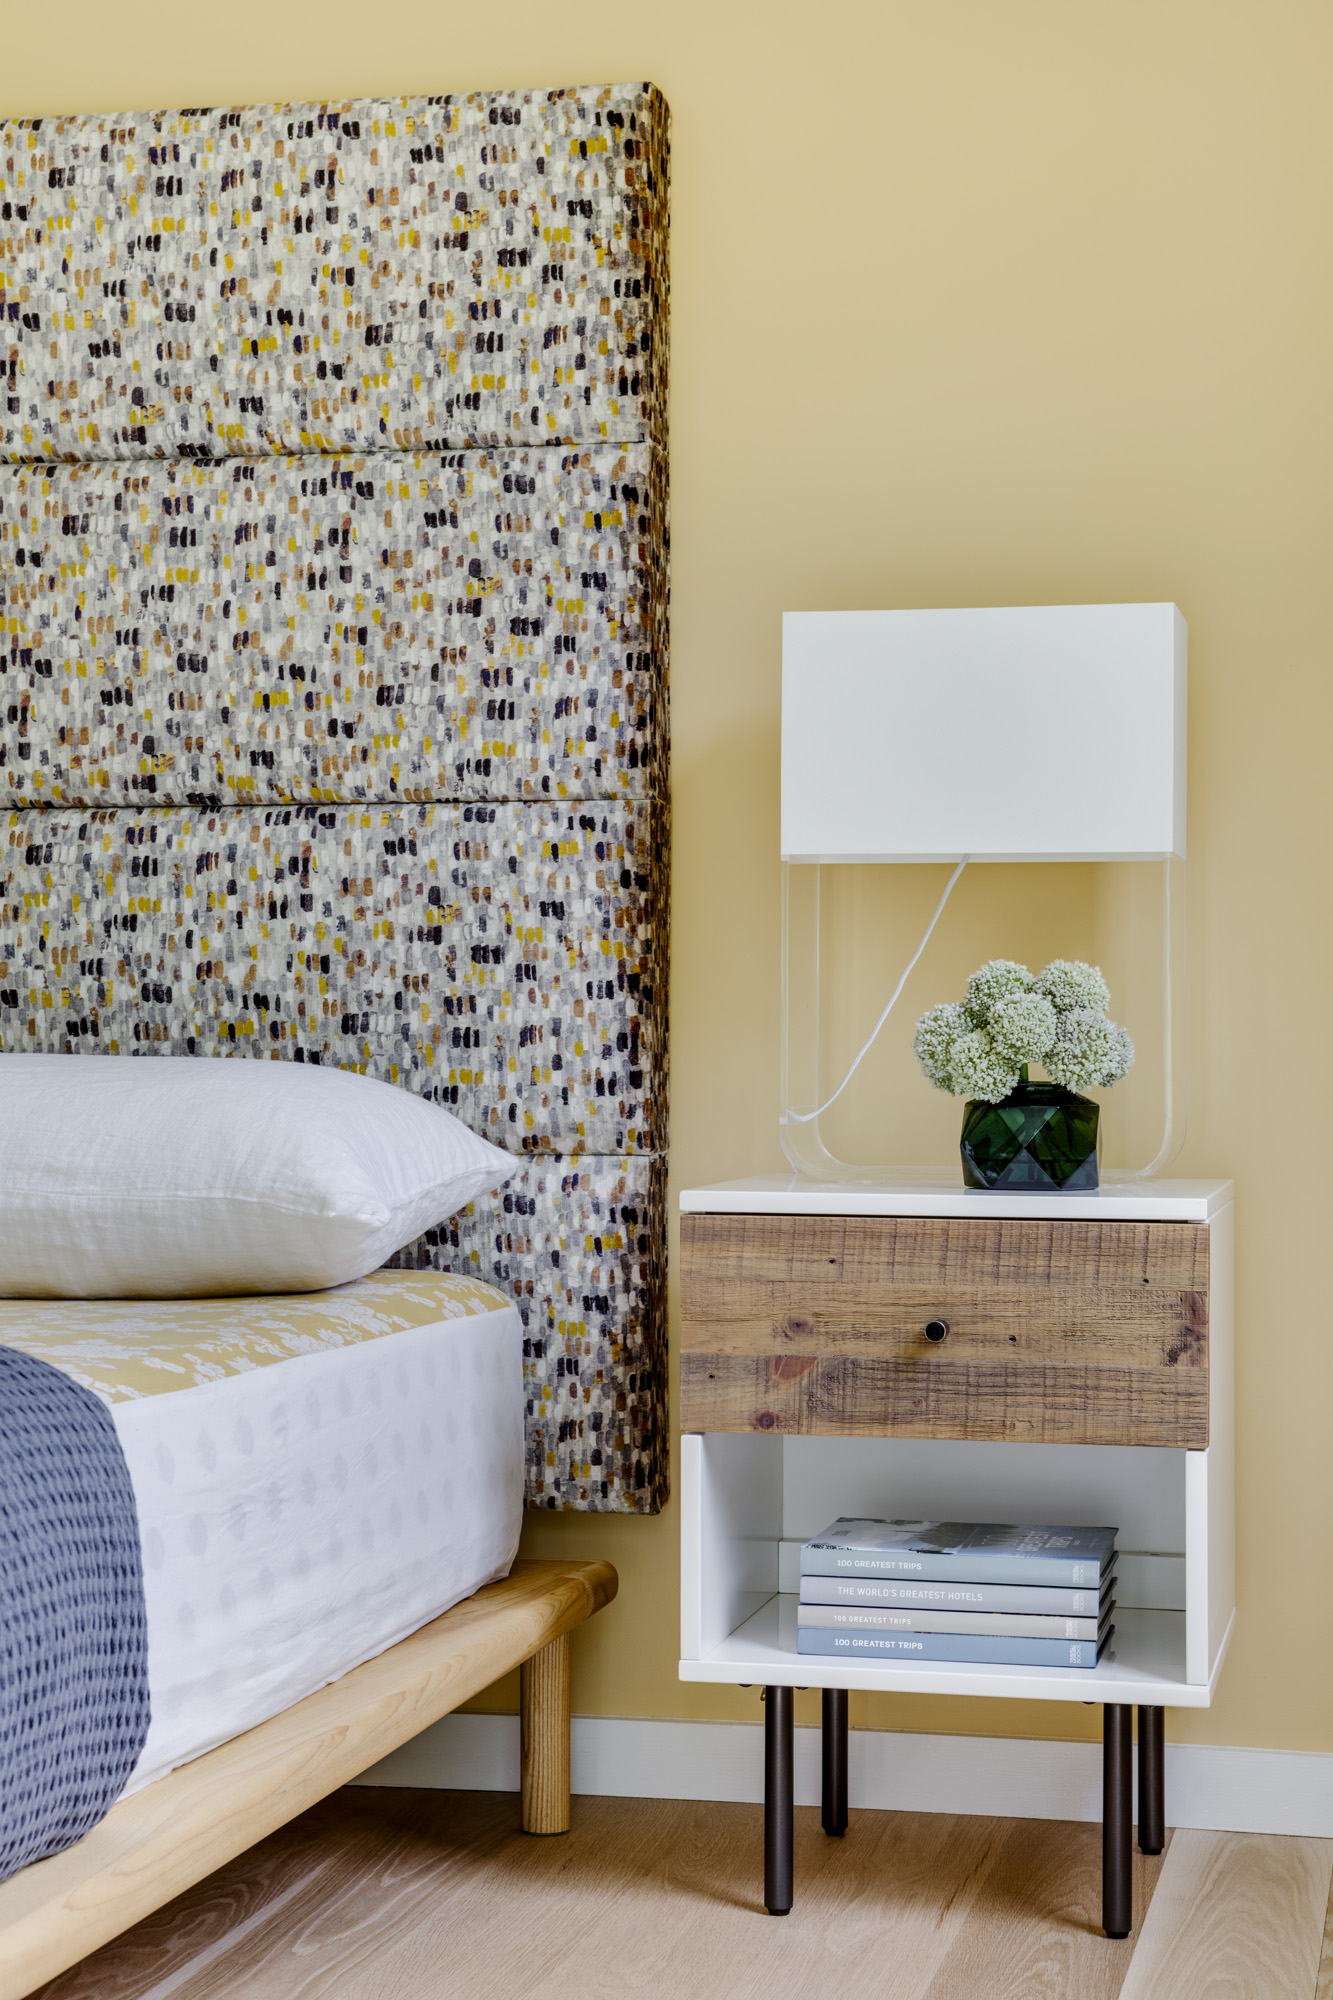 For one of theguest bedrooms, the designers styled a Lusso headboard featuring dotted, earth-toned fabric from Romo with rustic minimalist nighstands from West Elm. The bed was sourced from Wilbur Davis Studios.